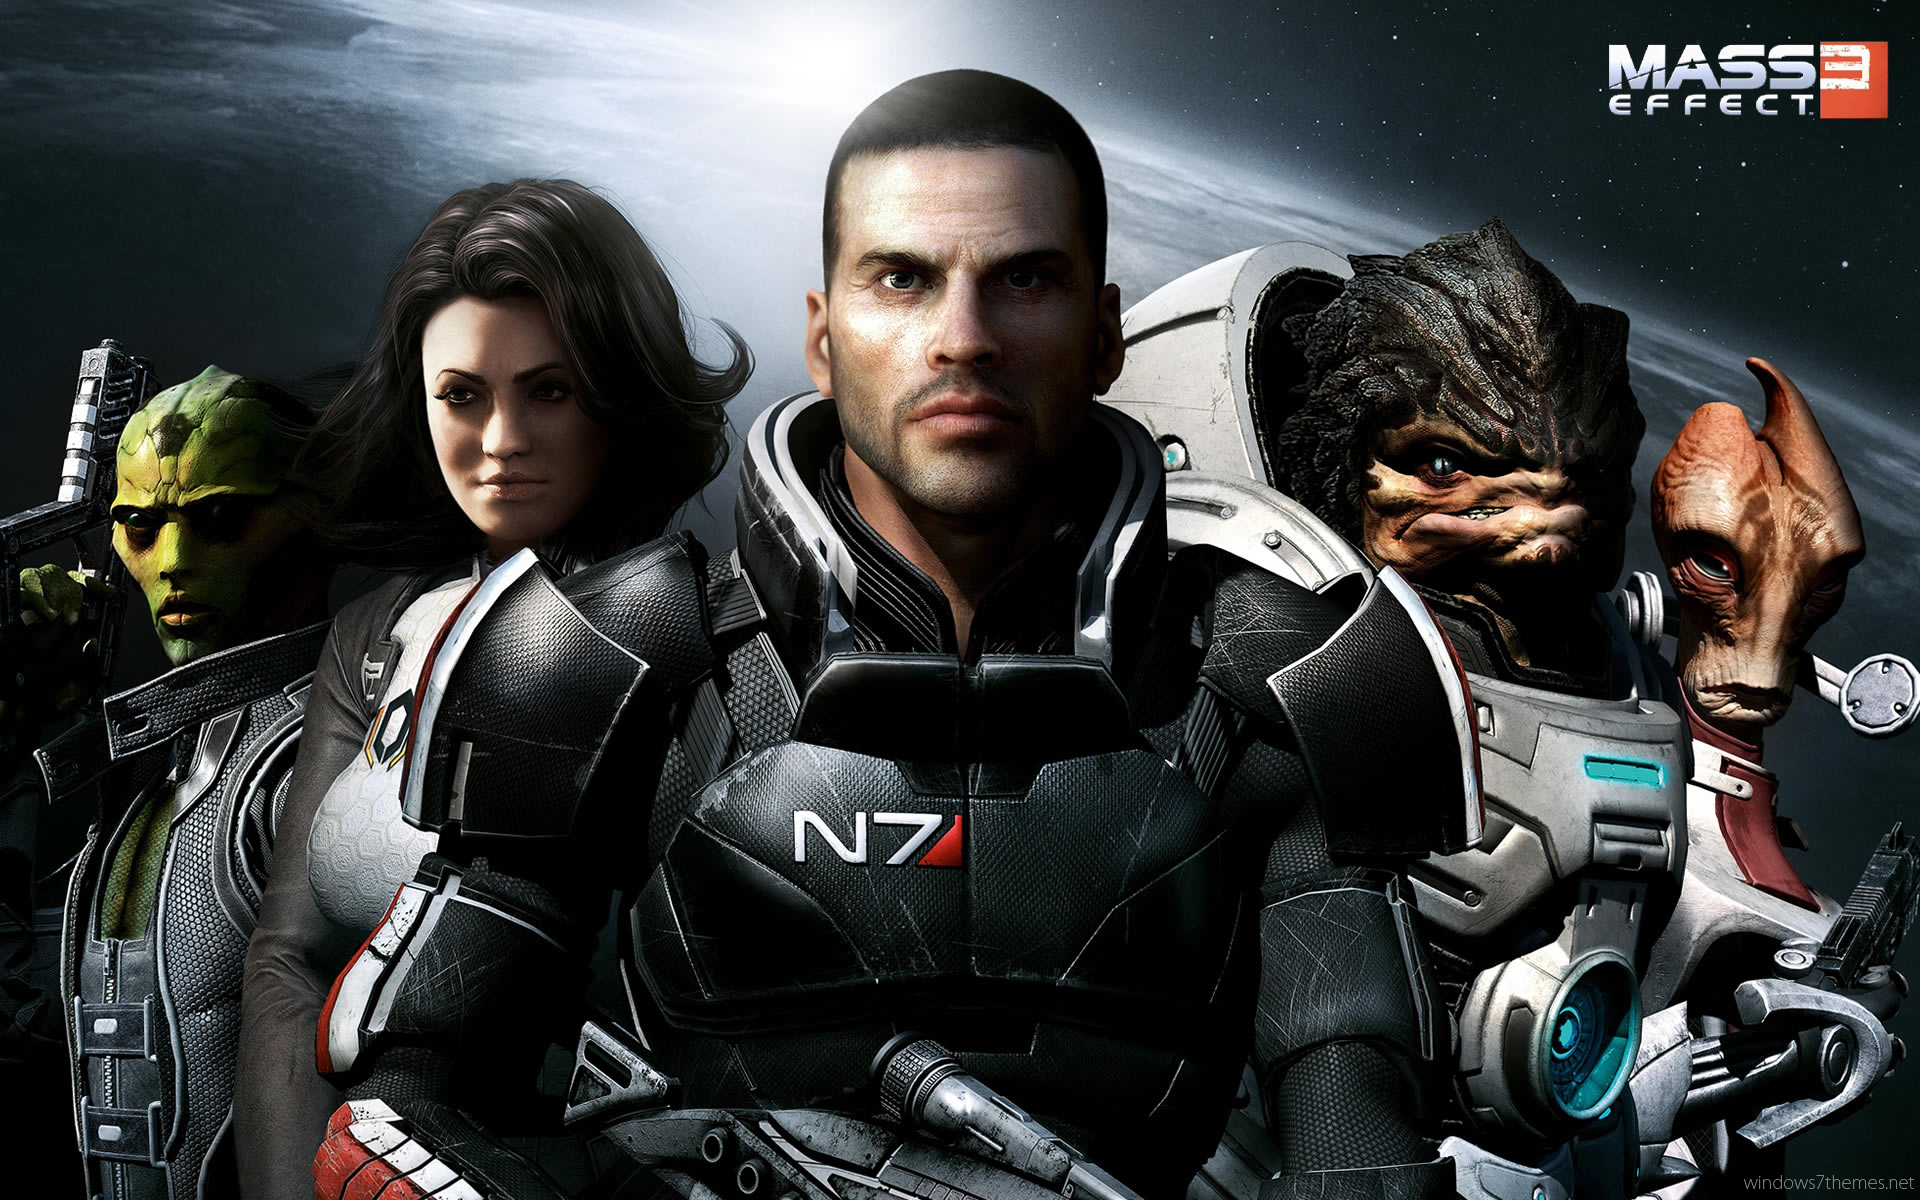 Mass effect picture 35